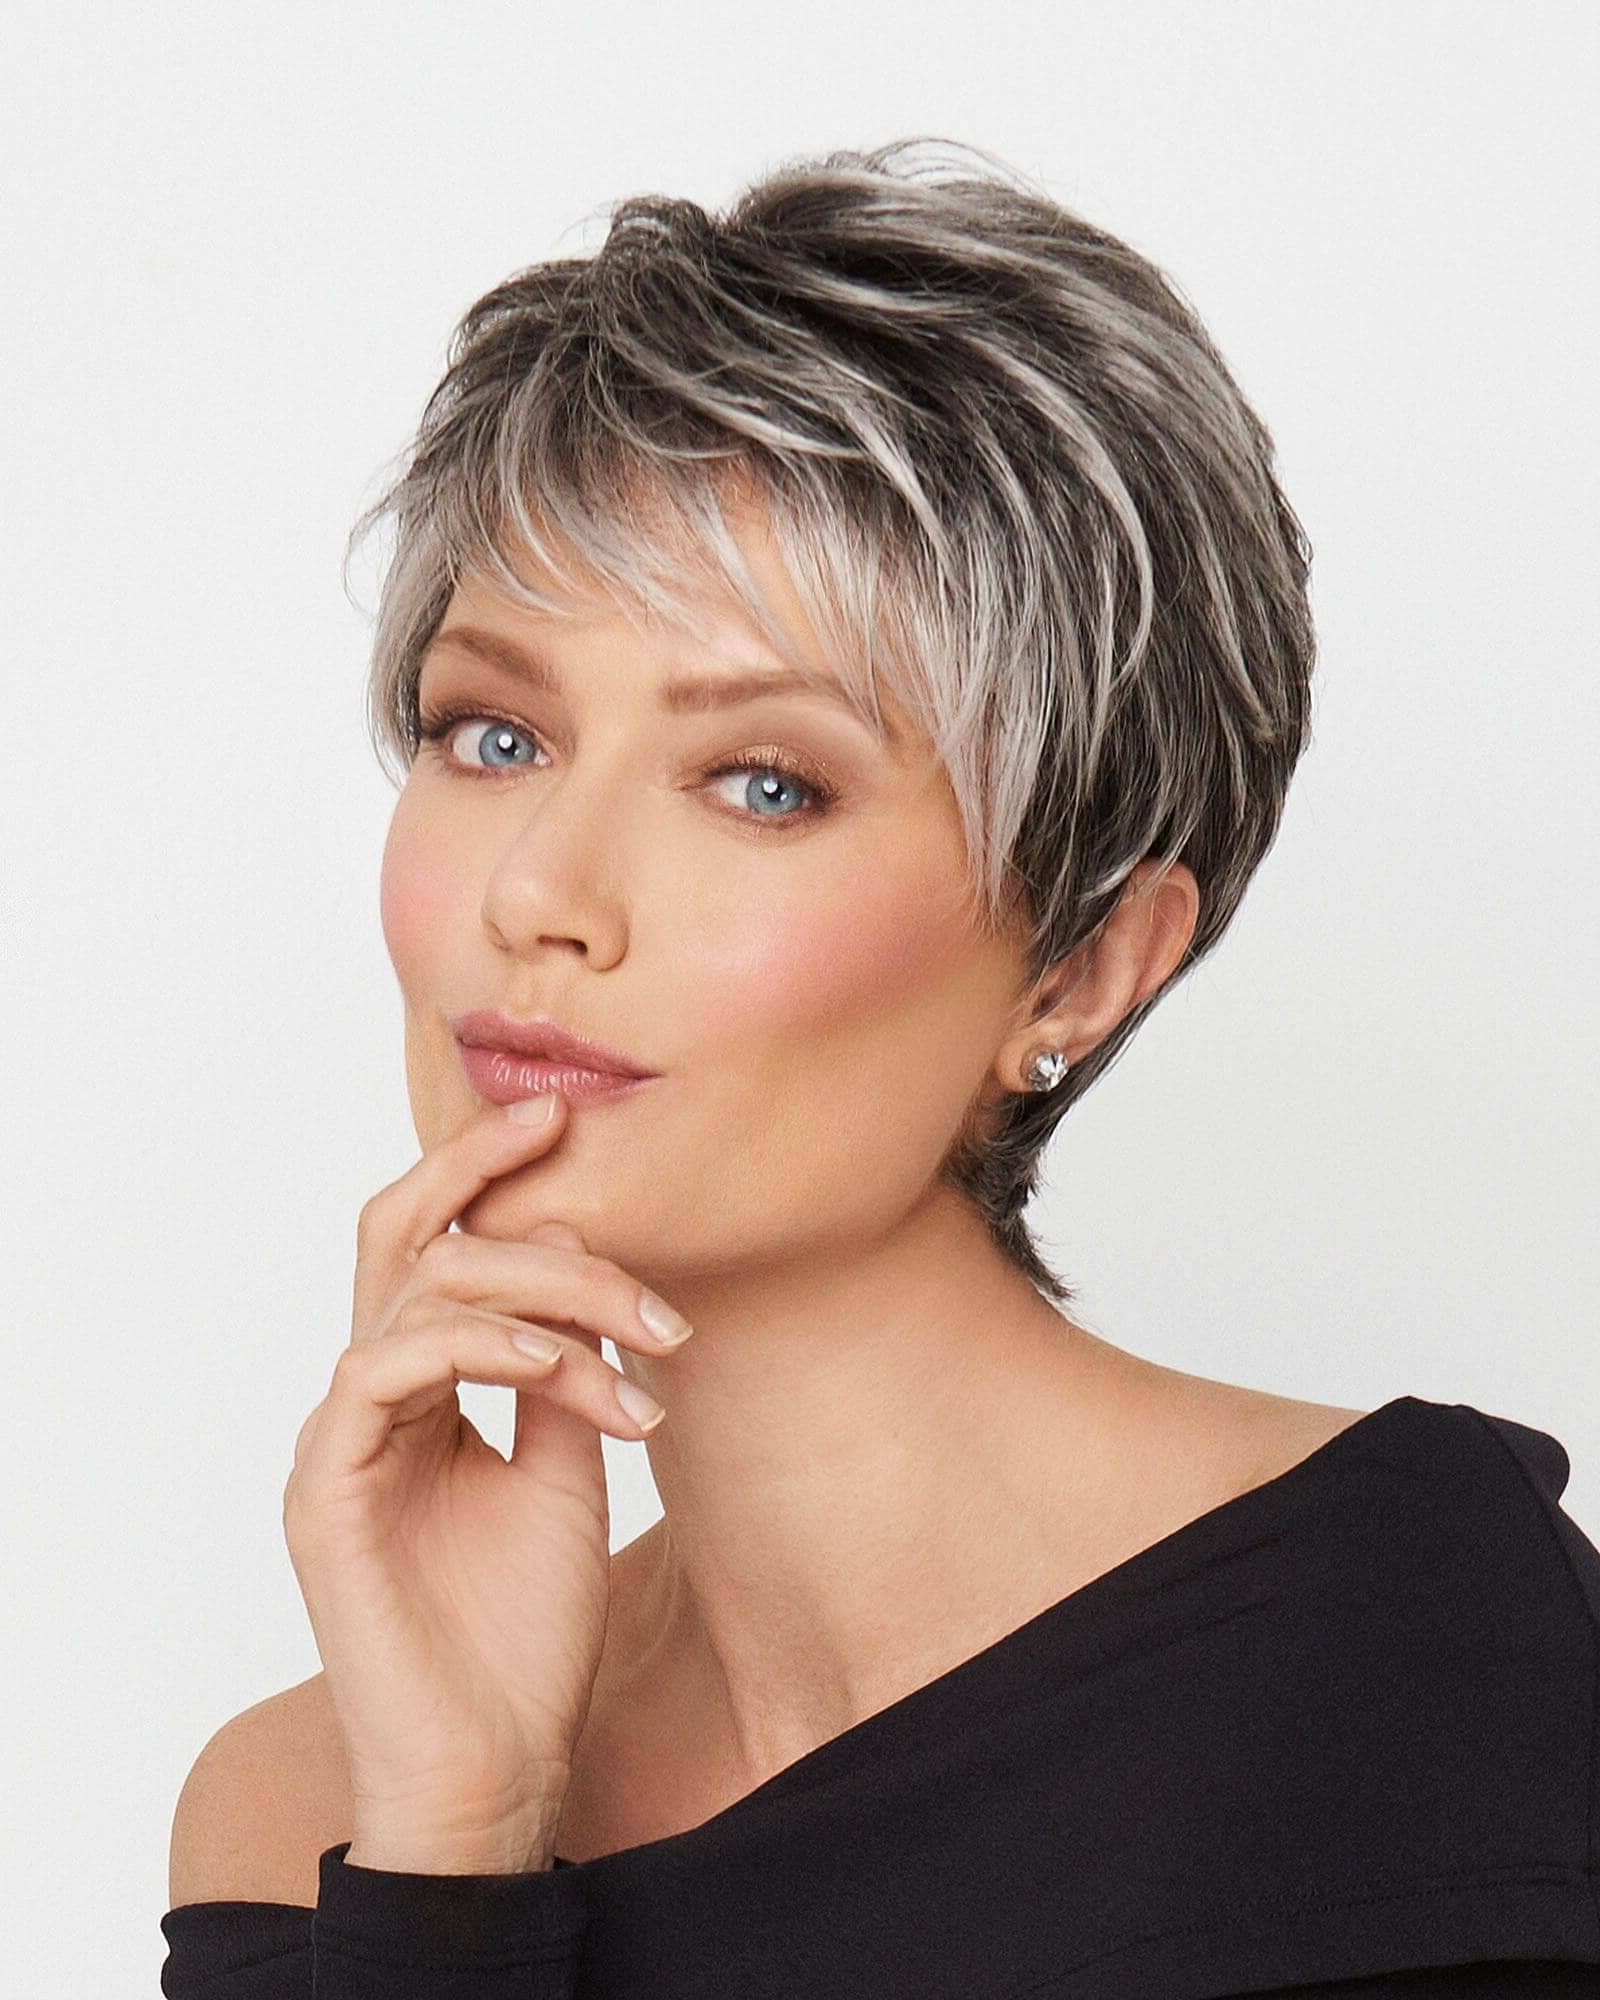 50 Pixie Haircuts You'll See Trending In 2018 In Pixie Haircuts With Short Thick Hair (View 11 of 20)